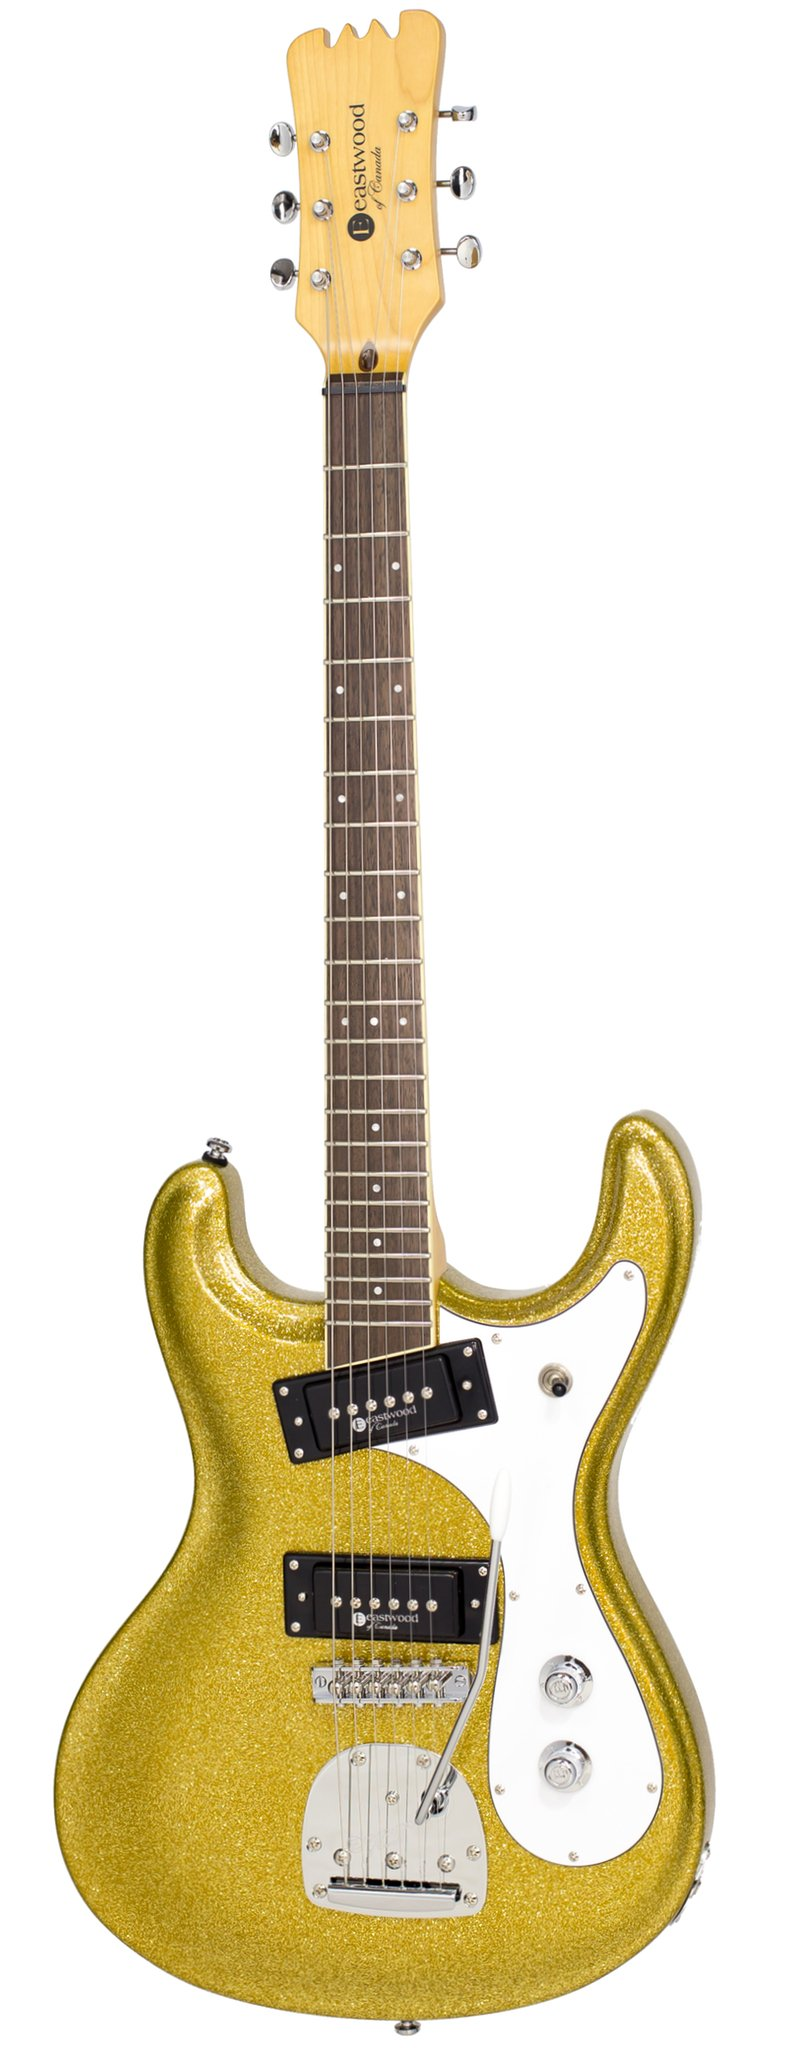 Eastwood Guitars Sidejack PRO DLX Gold Metal Flake Full Front